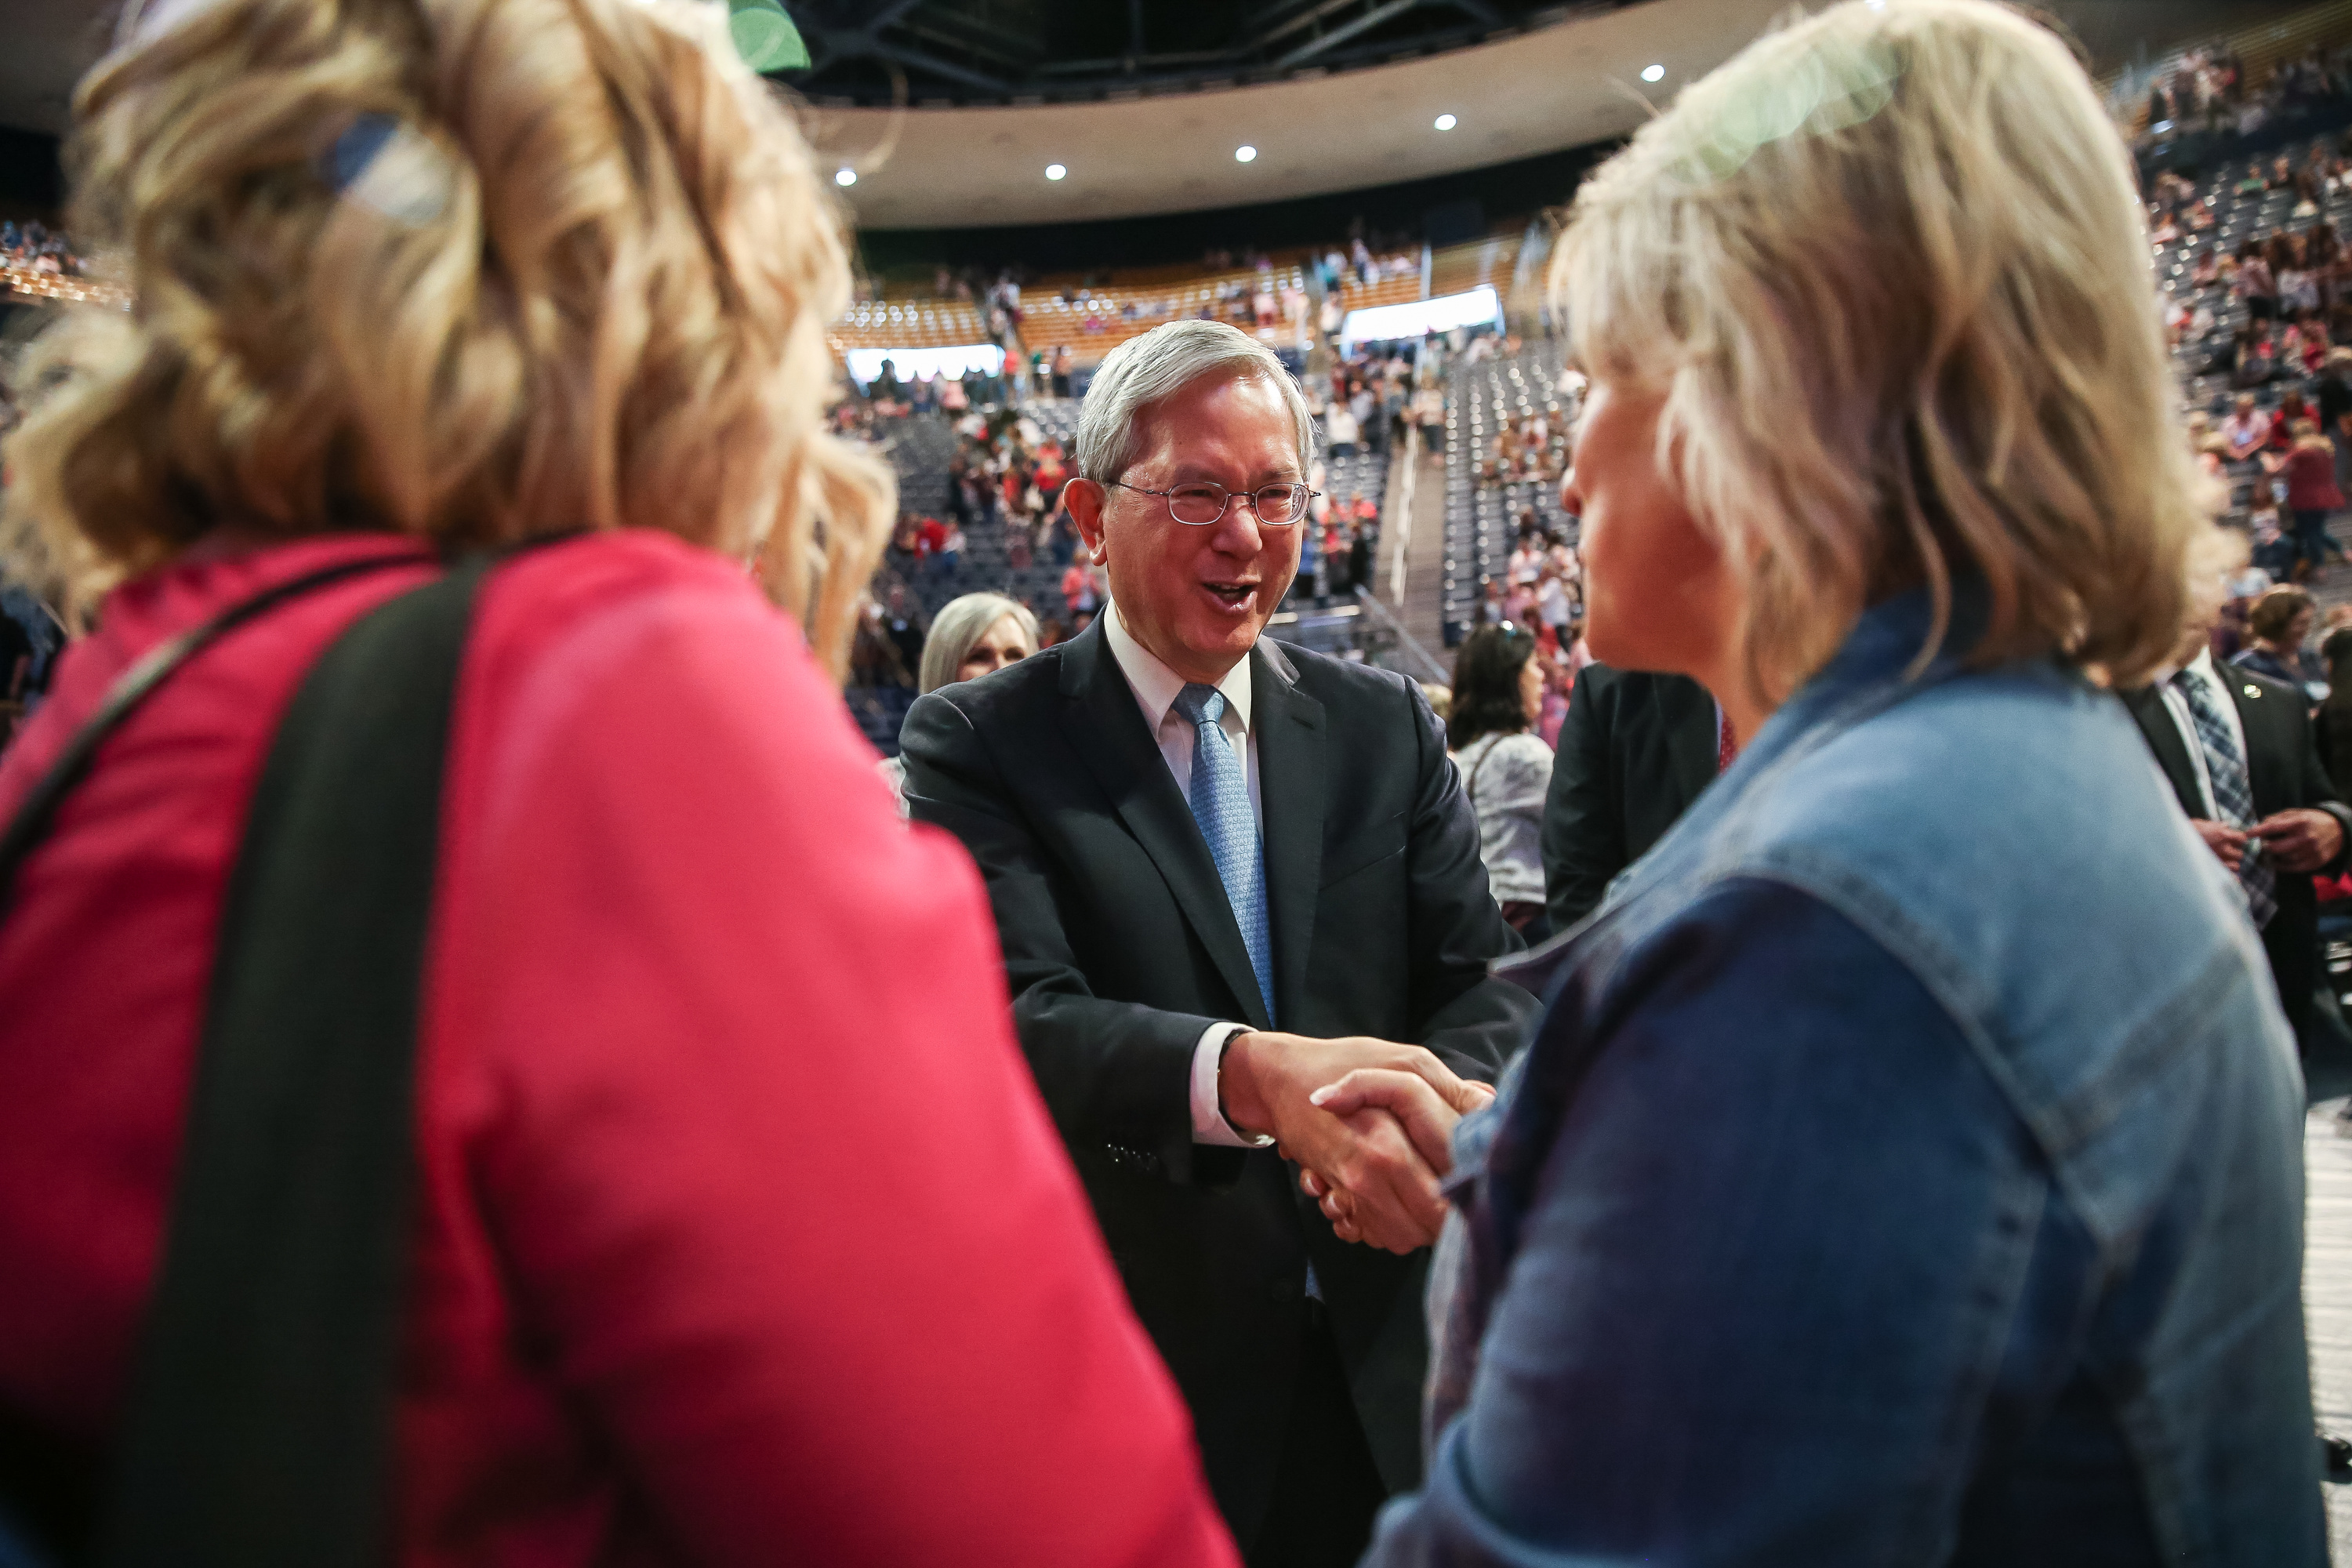 Elder Gerrit W. Gong, of the Quorum of the Twelve Apostles of the LDS Church, greets attendees after speaking at the BYU Women's Conference at the Marriott Center in Provo on Friday, May 4, 2018.